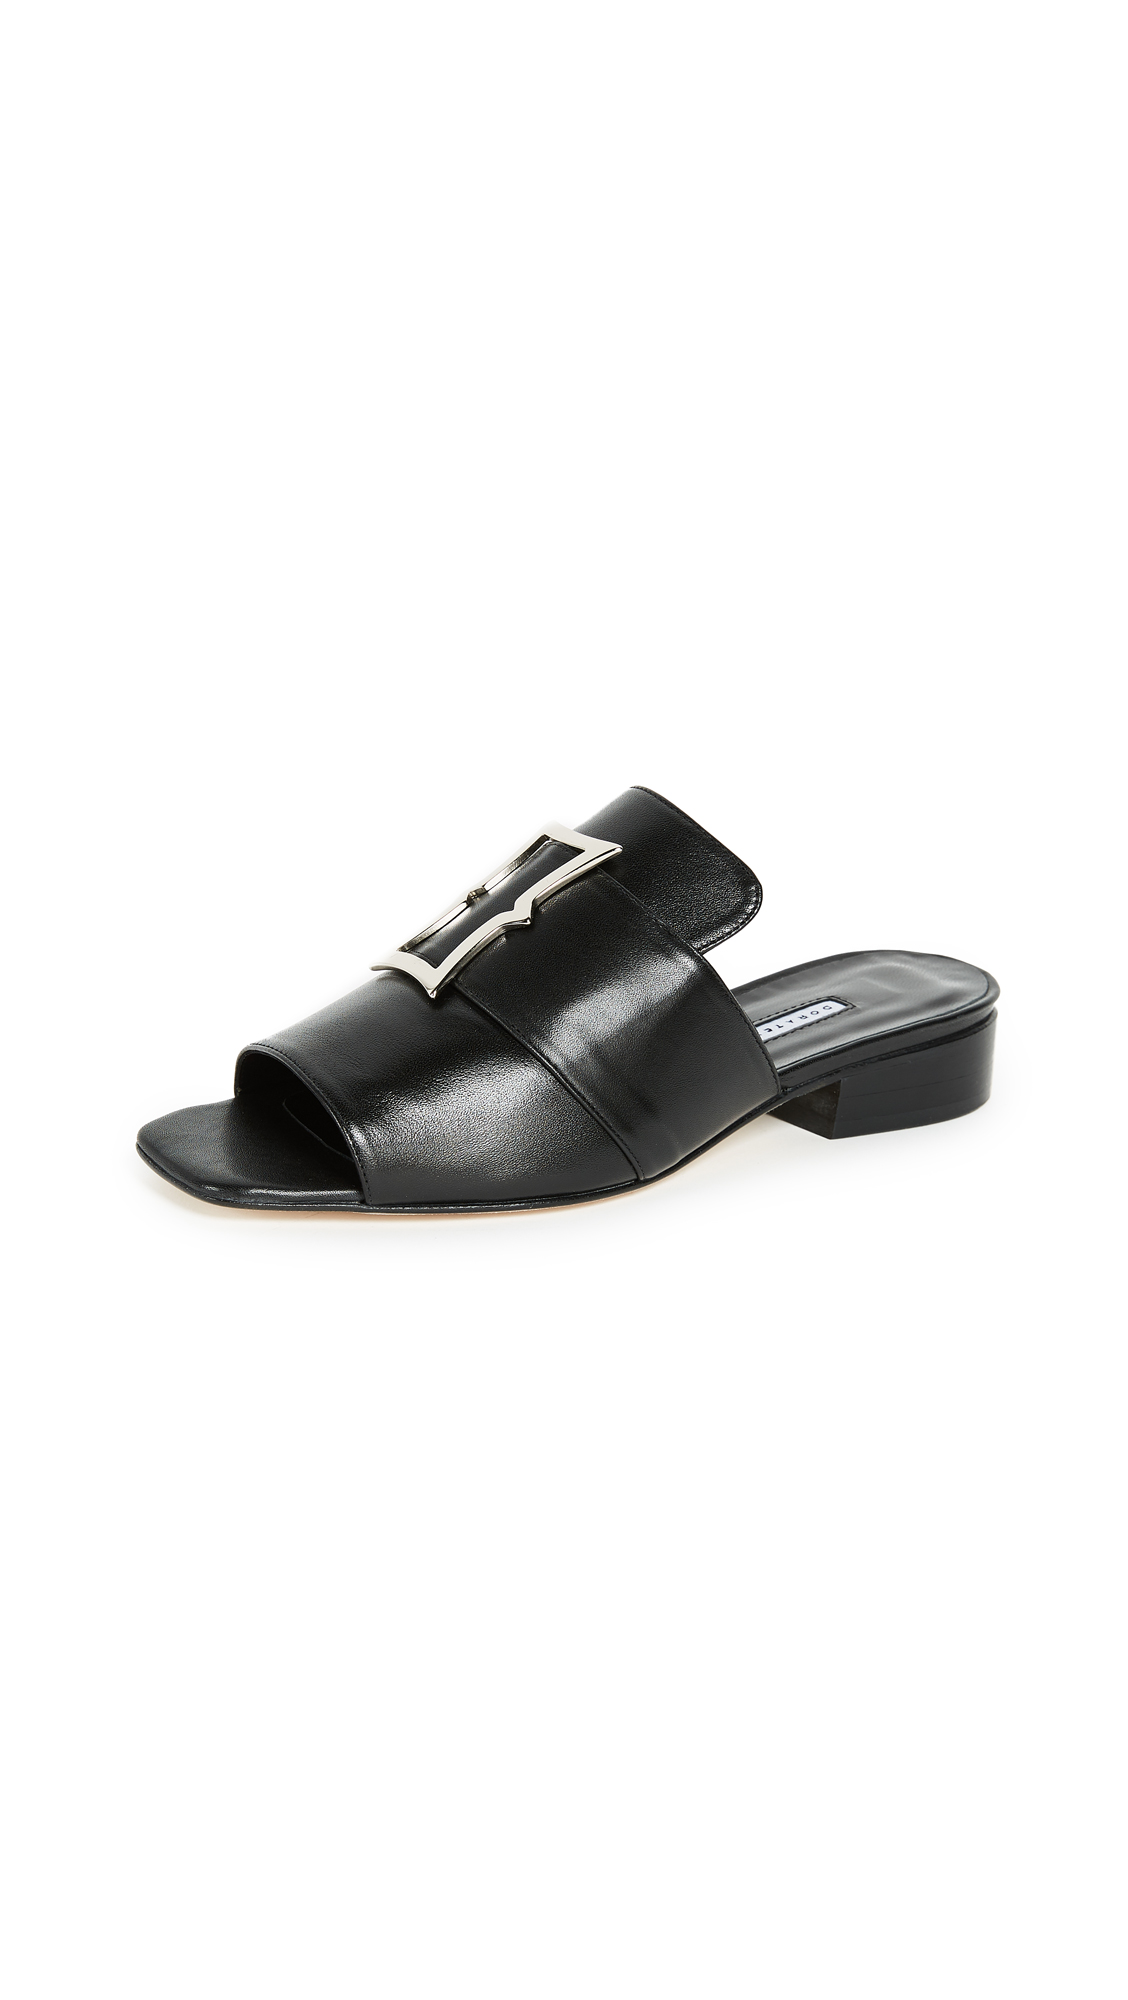 Dorateymur Harput II Slides - Black